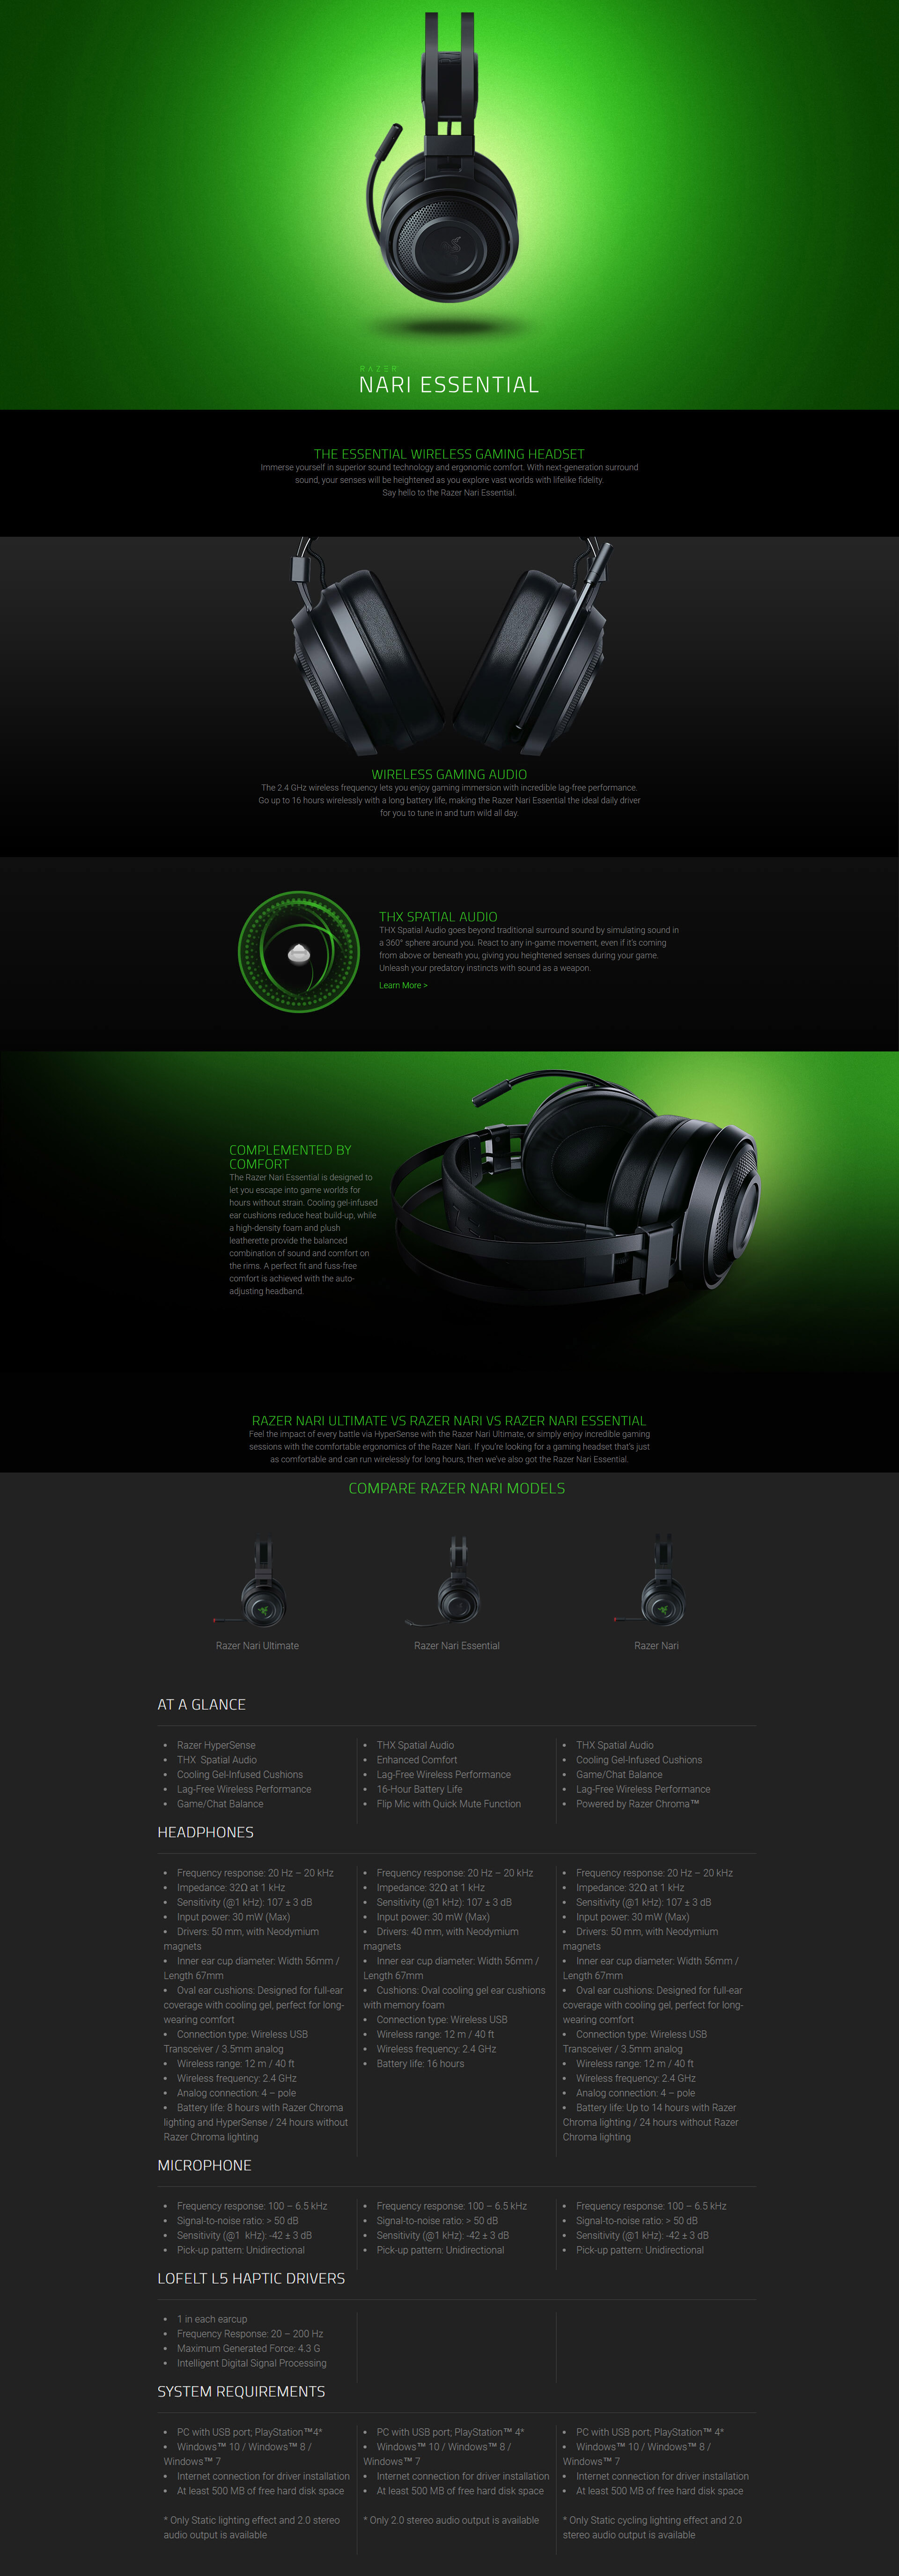 A large marketing image providing additional information about the product Razer Nari Essential Wireless Gaming Headset - Additional alt info not provided